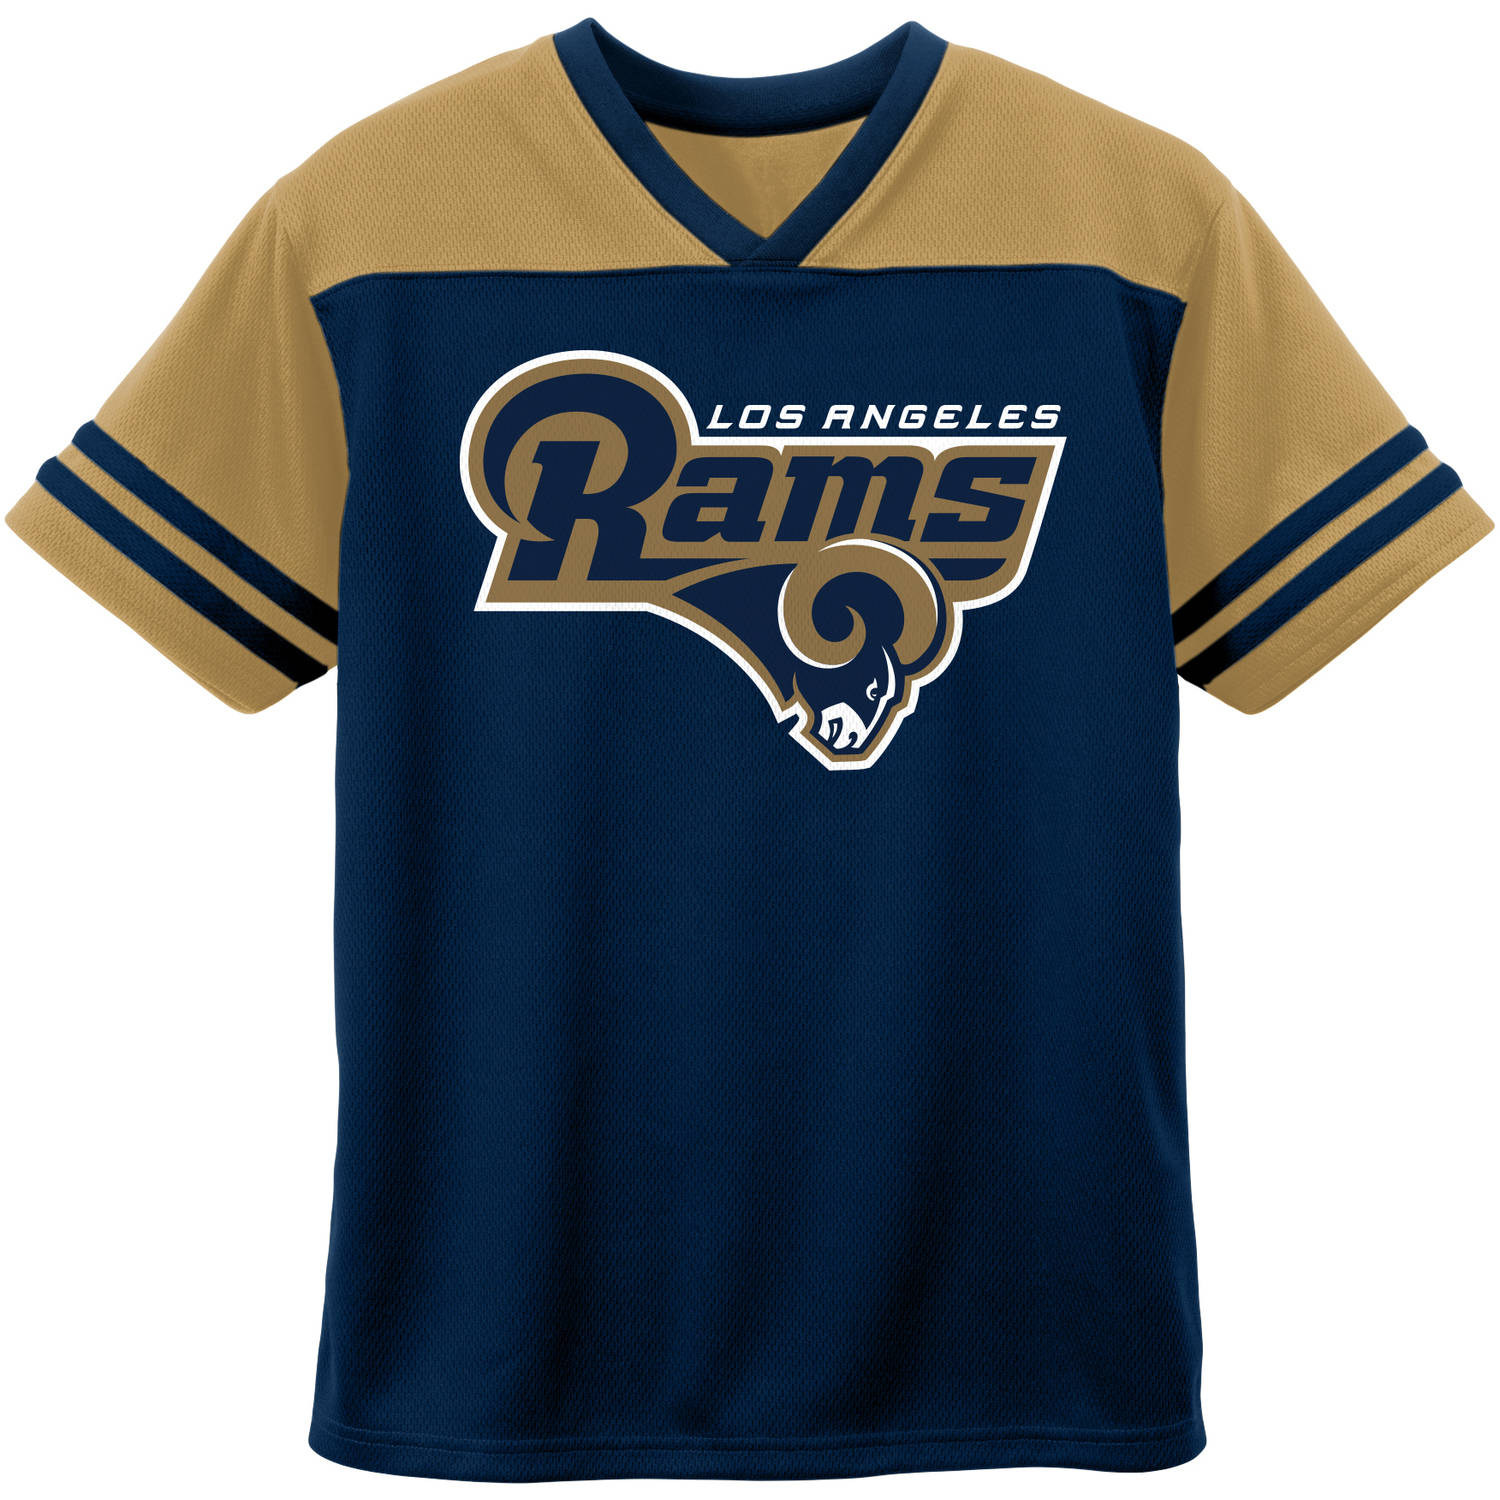 NFL Los Angeles Rams Youth Short Sleeve Graphic Tee